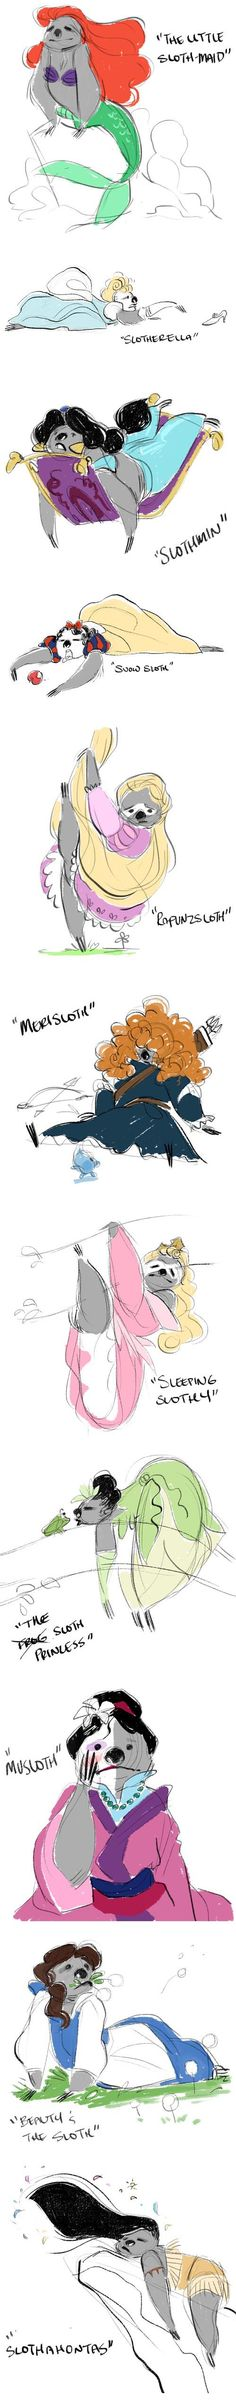 Disney Princesses as Sloths (I don't know why but I find this hilarious) I need to give this to Mrs Still